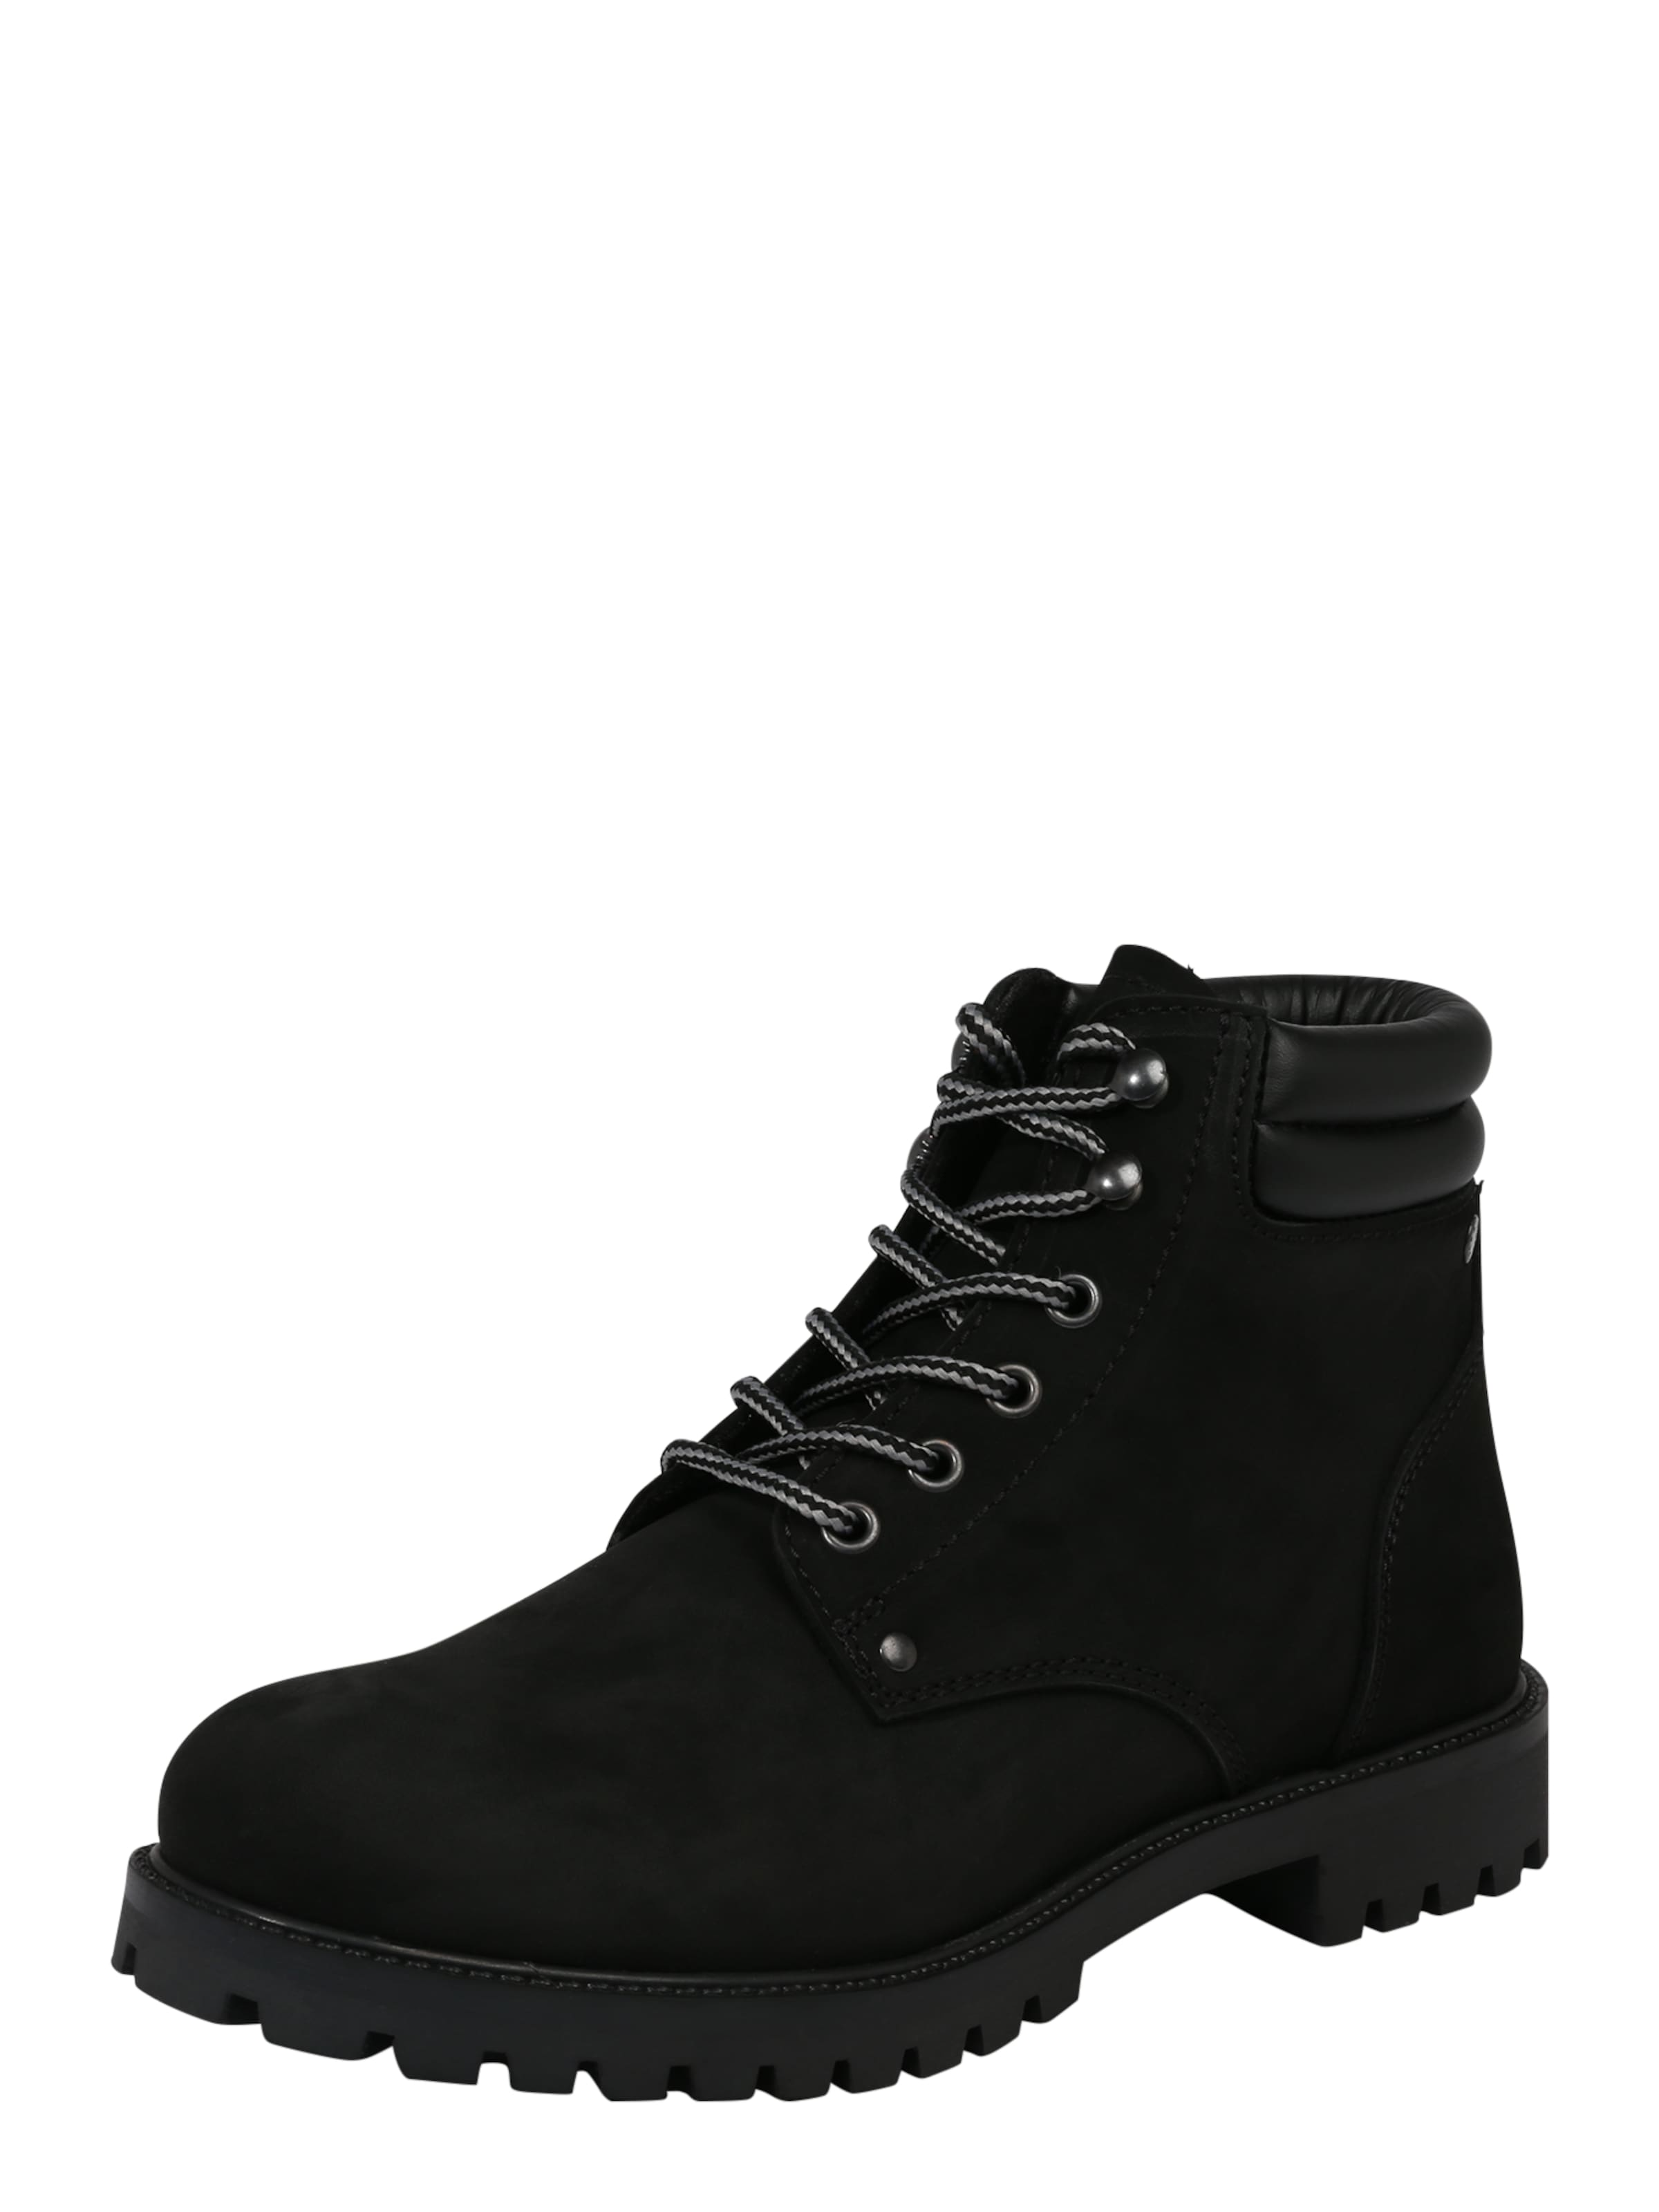 In Stiefel 'jfwstoke' Jones Schwarz Jackamp; AL53jq4R